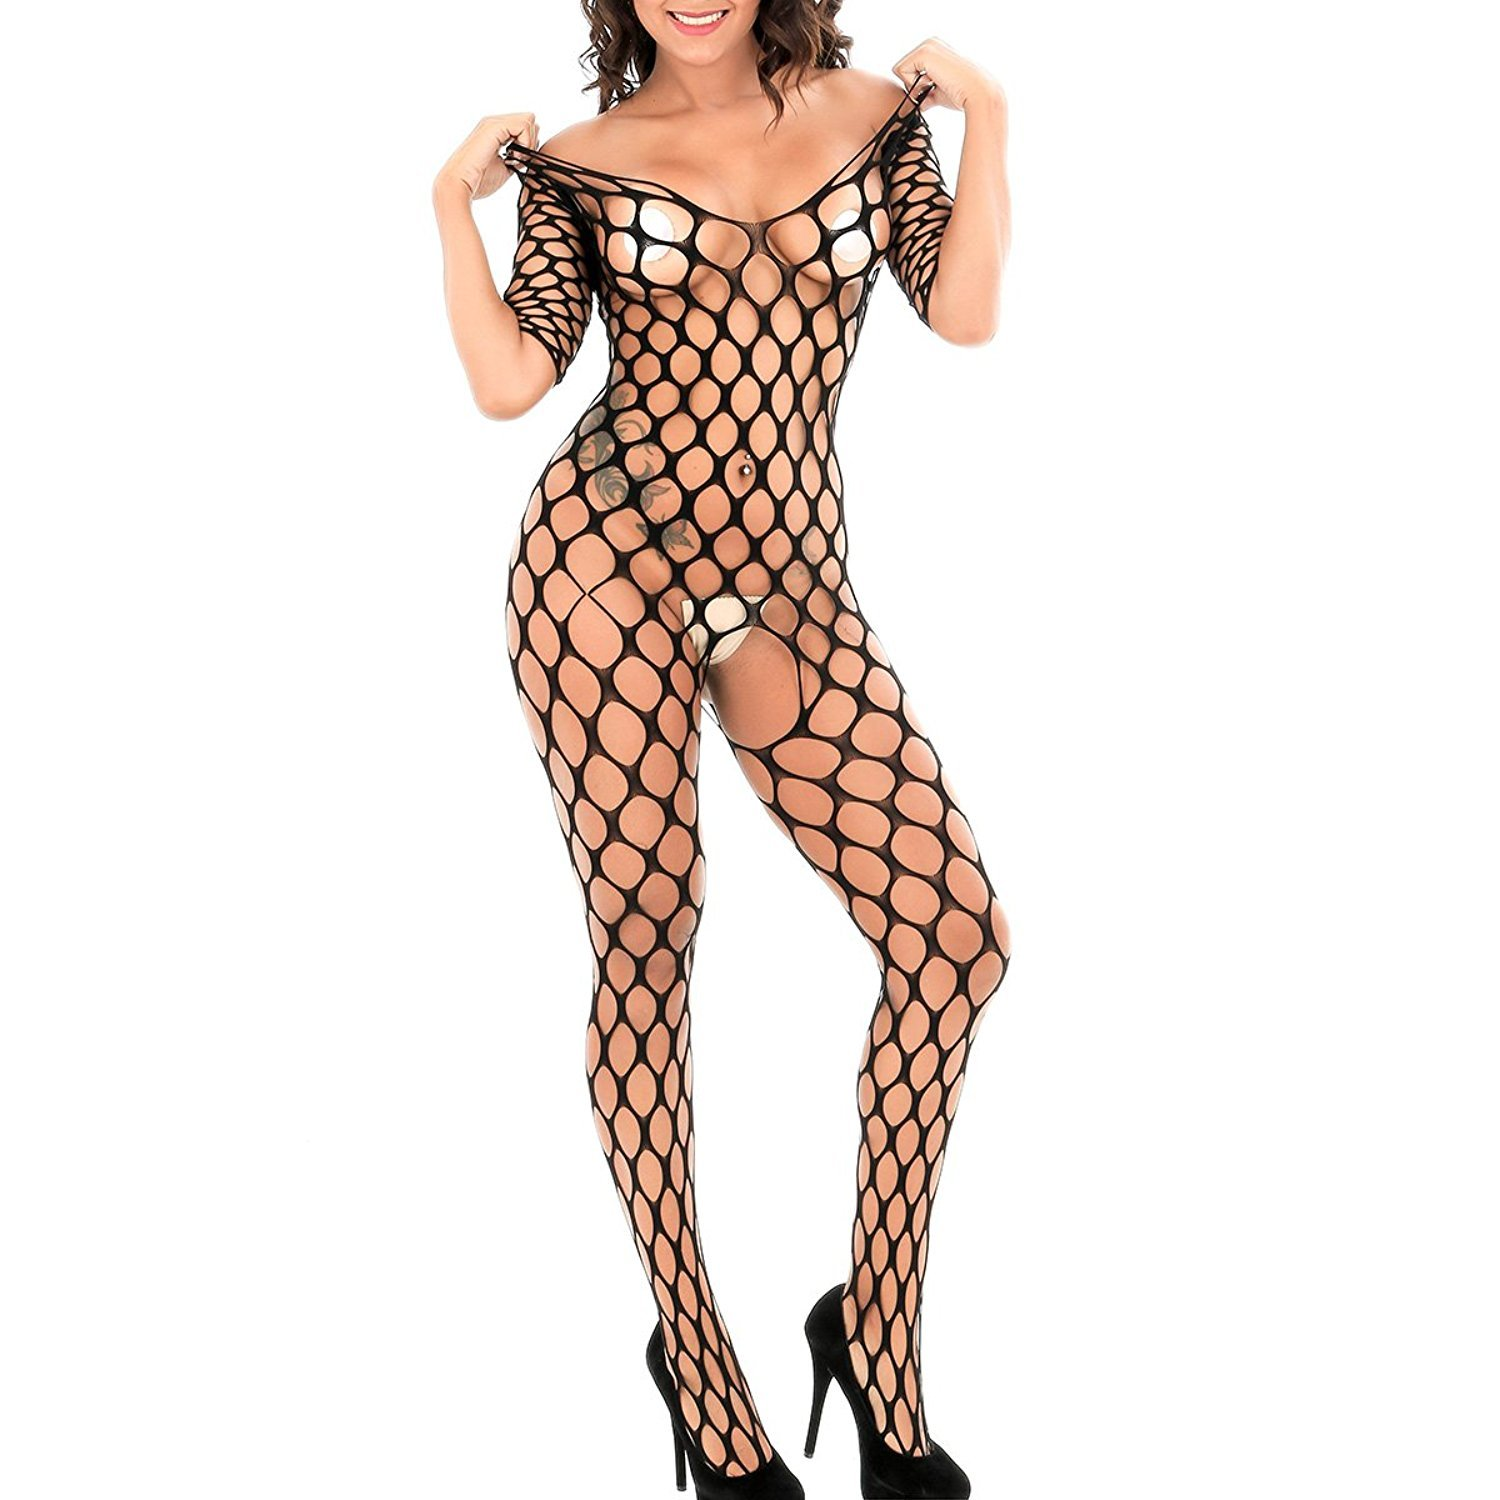 21f291c8d55 Beauty Bodystocking Crotchless Women Sexy Lingerie Fishnet Bodysuit Teddy  Hollow Out Stretch Babydoll